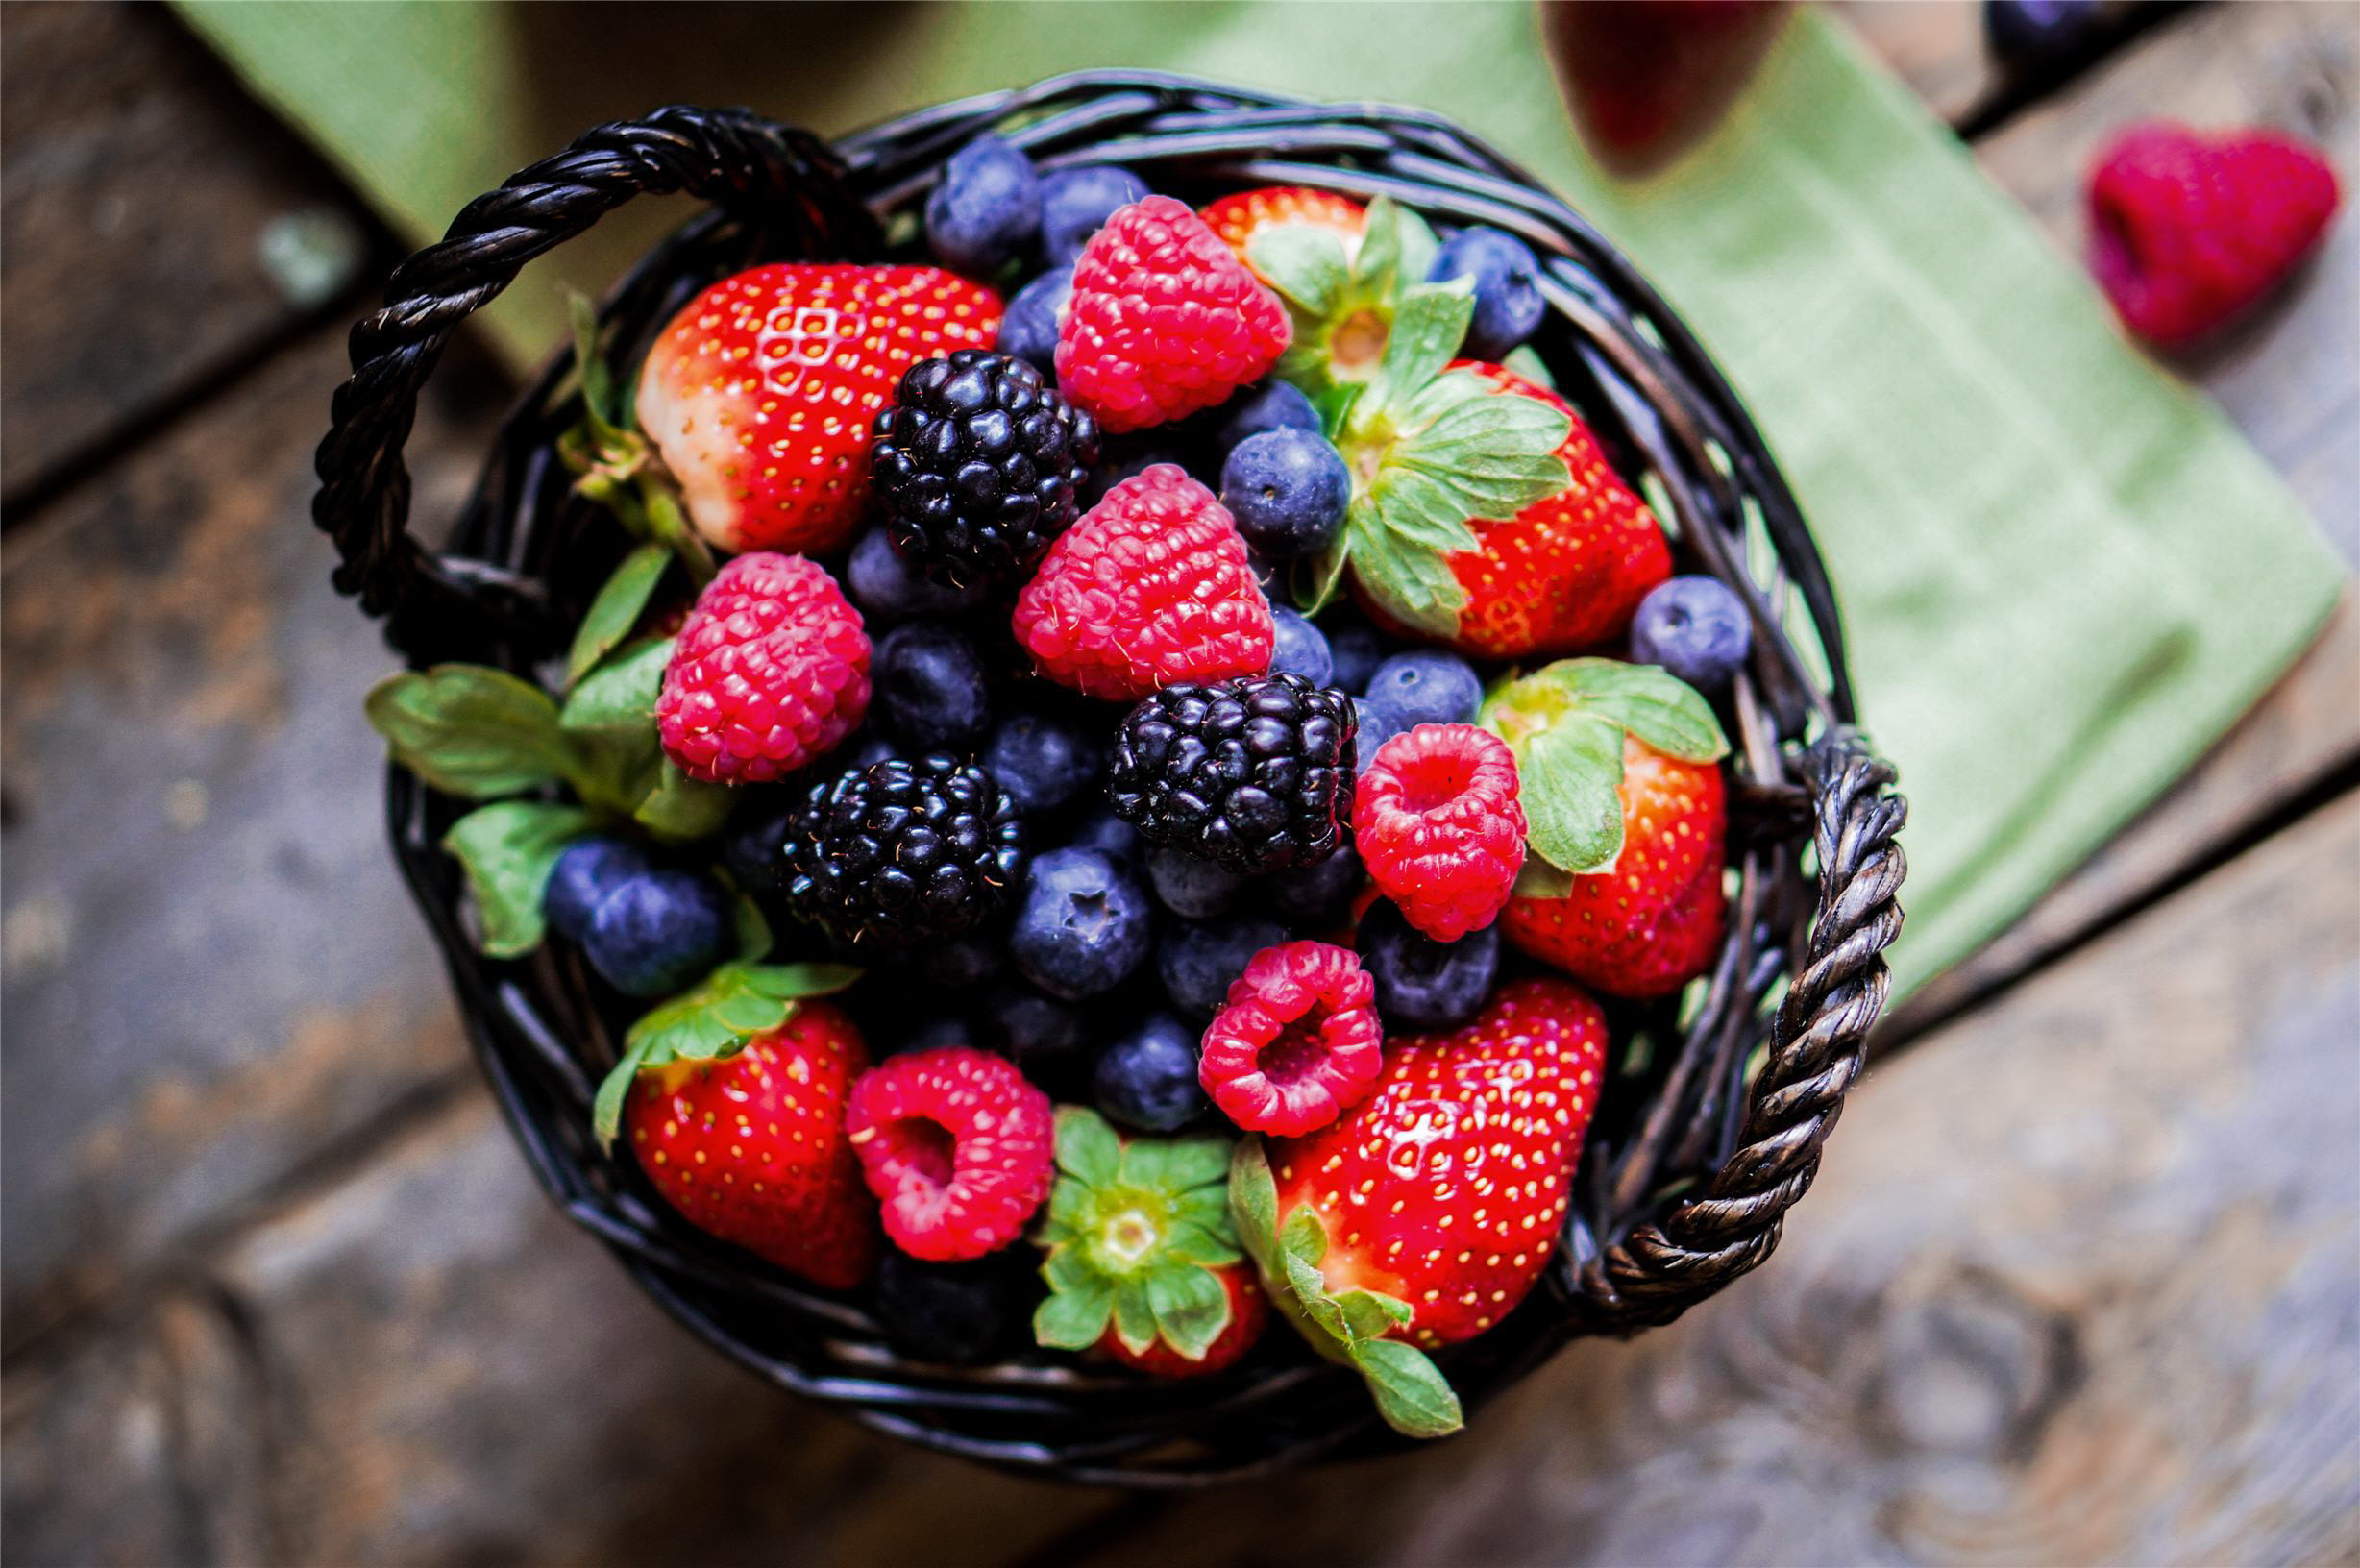 Rustic fruits, strawberries, blueberries